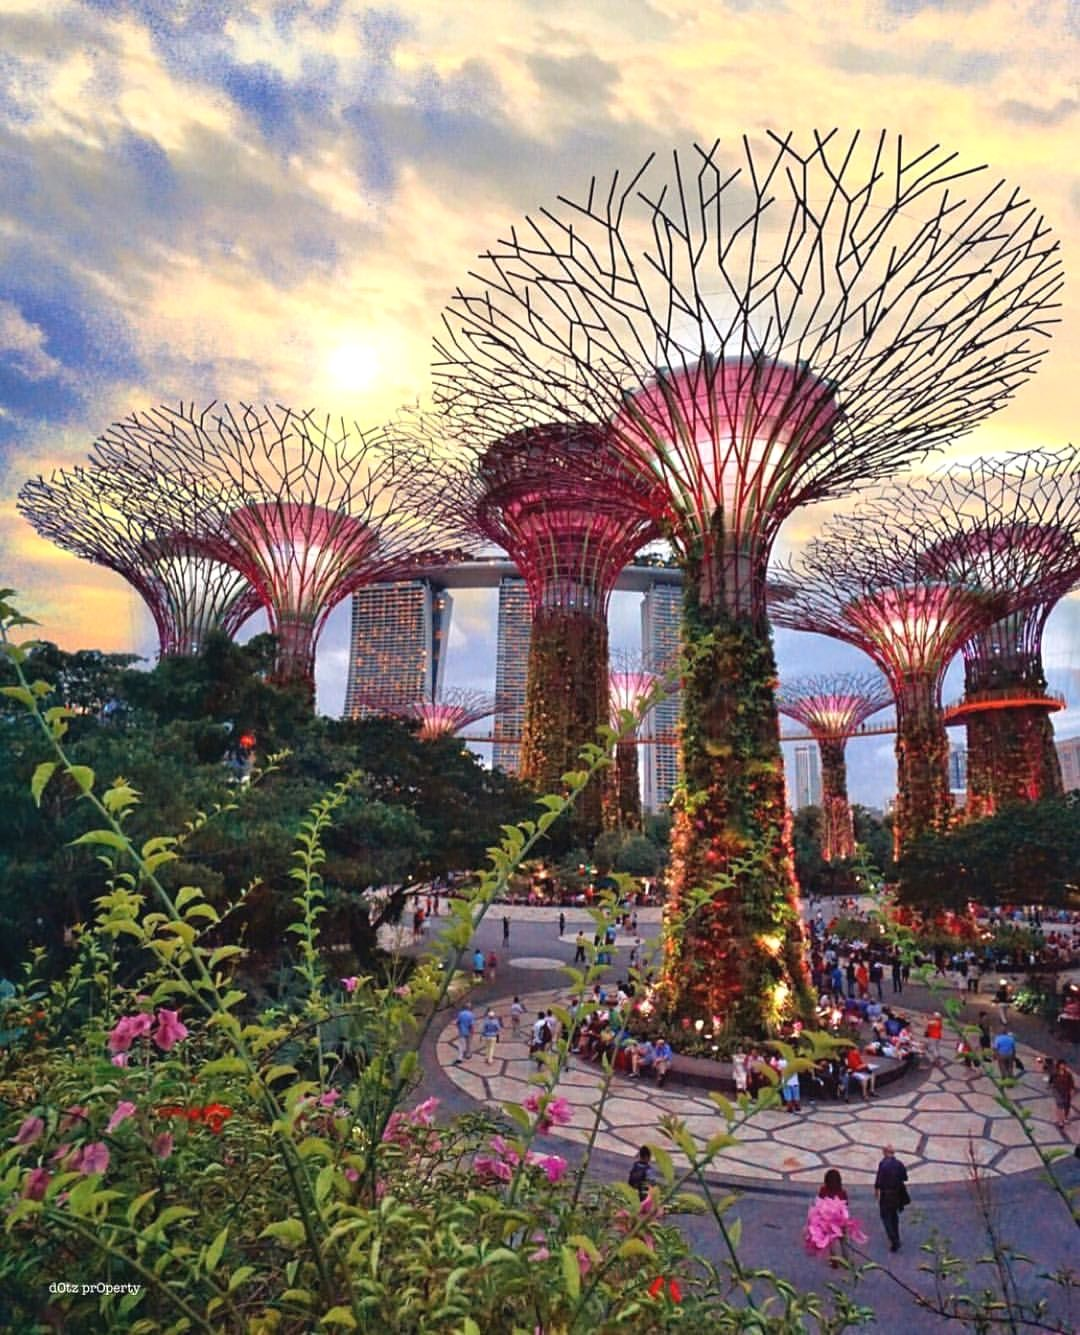 Garden By The Bay Singapore Lovely Shot By Dotzsoh Good Night World Gardens By The Bay Good Night World Singapore